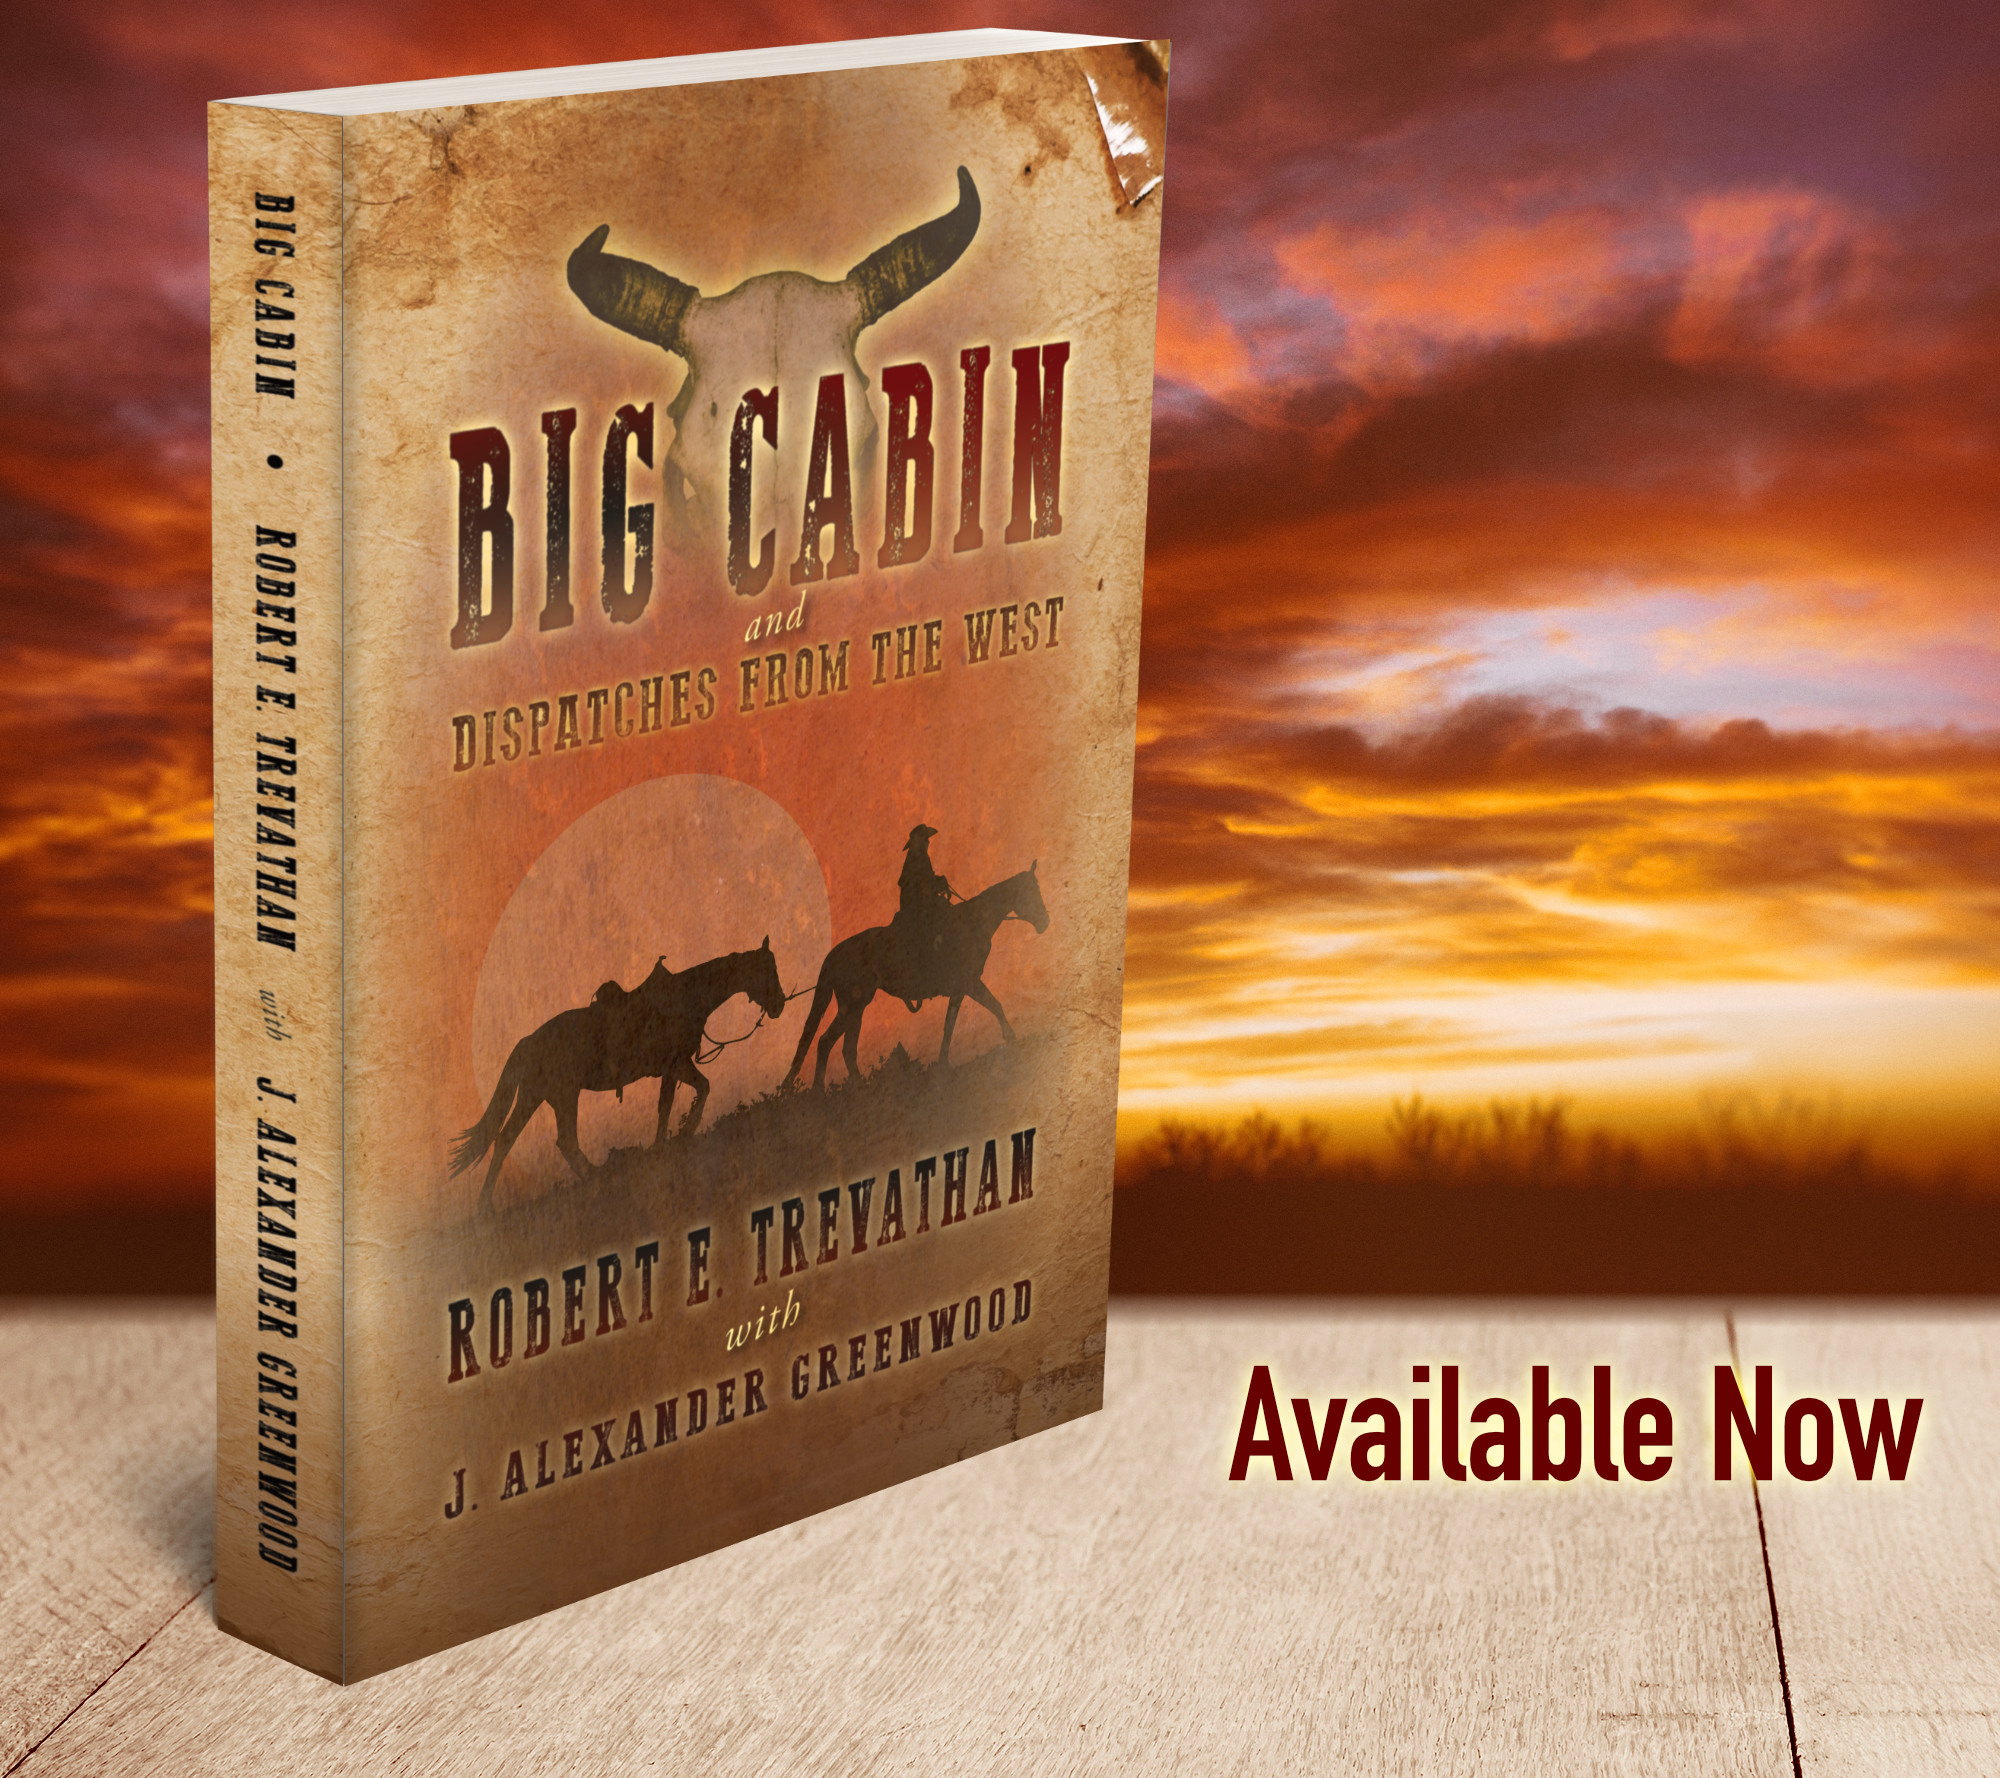 BIG CABIN-6x9-Paperback-Upright-Front-Only3.jpg